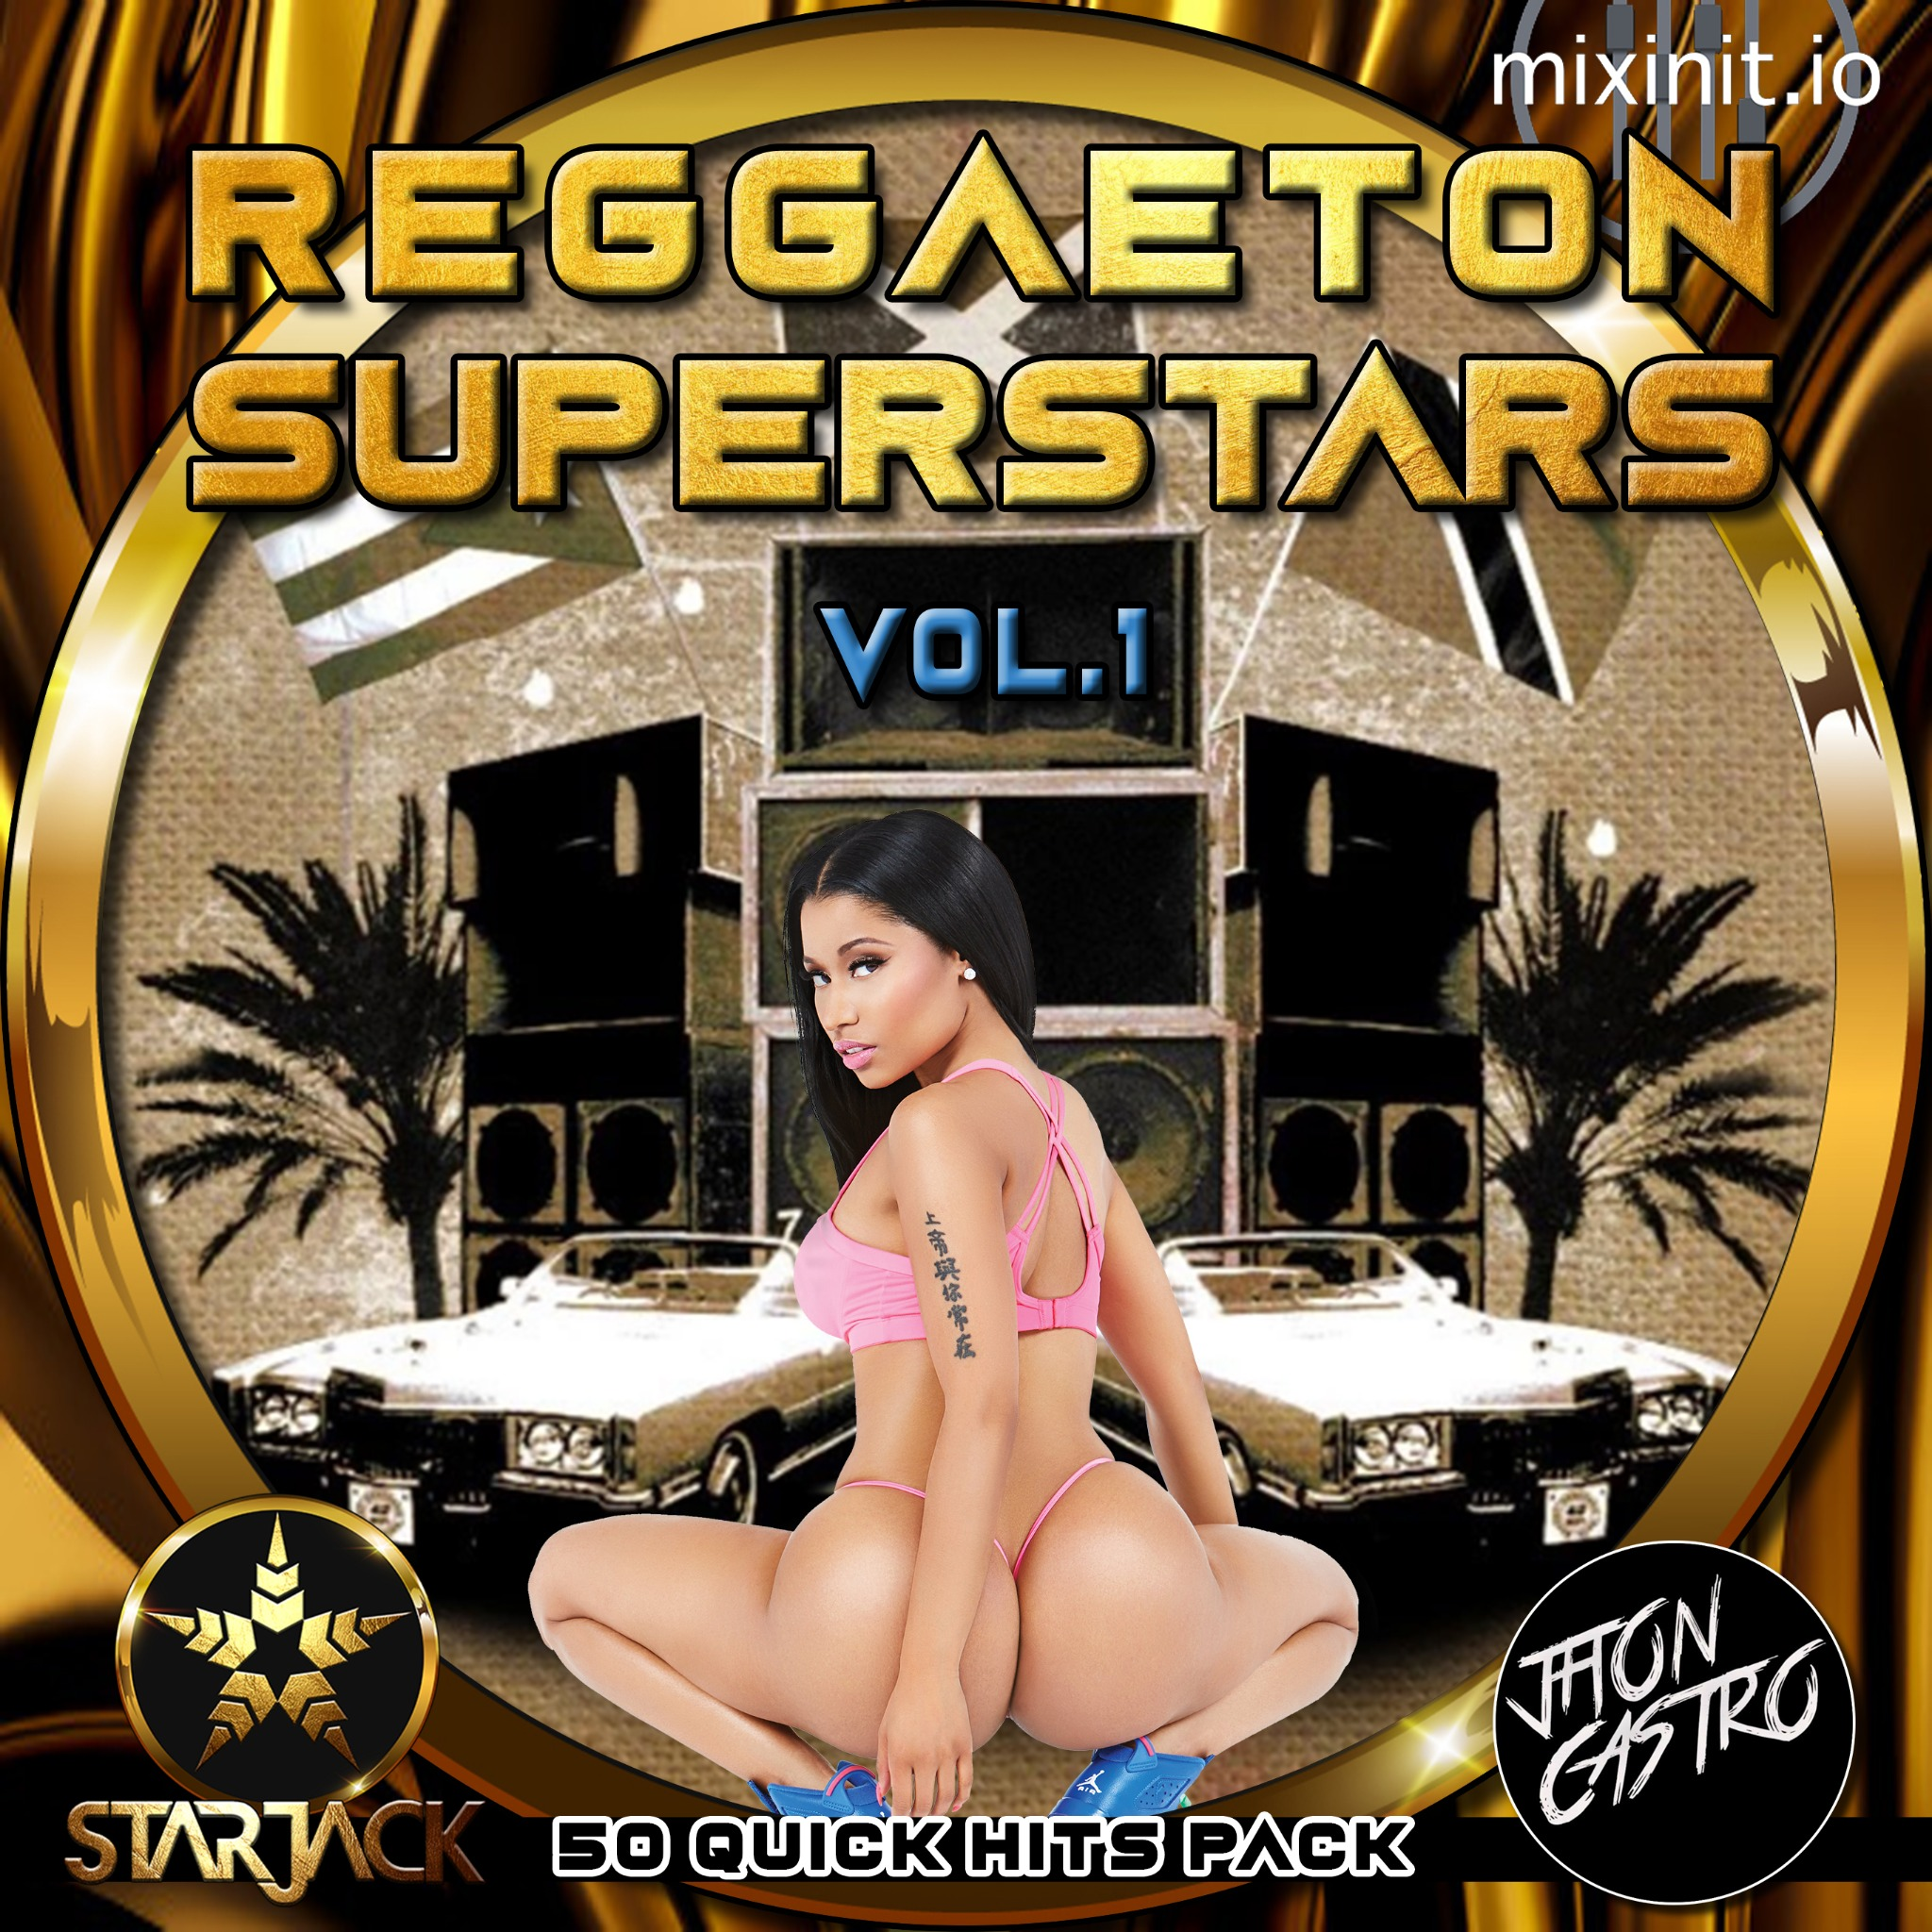 Starjack & Jhon Castro - Reggaeton Superstars Vol. 1 (50 Quick Hits)